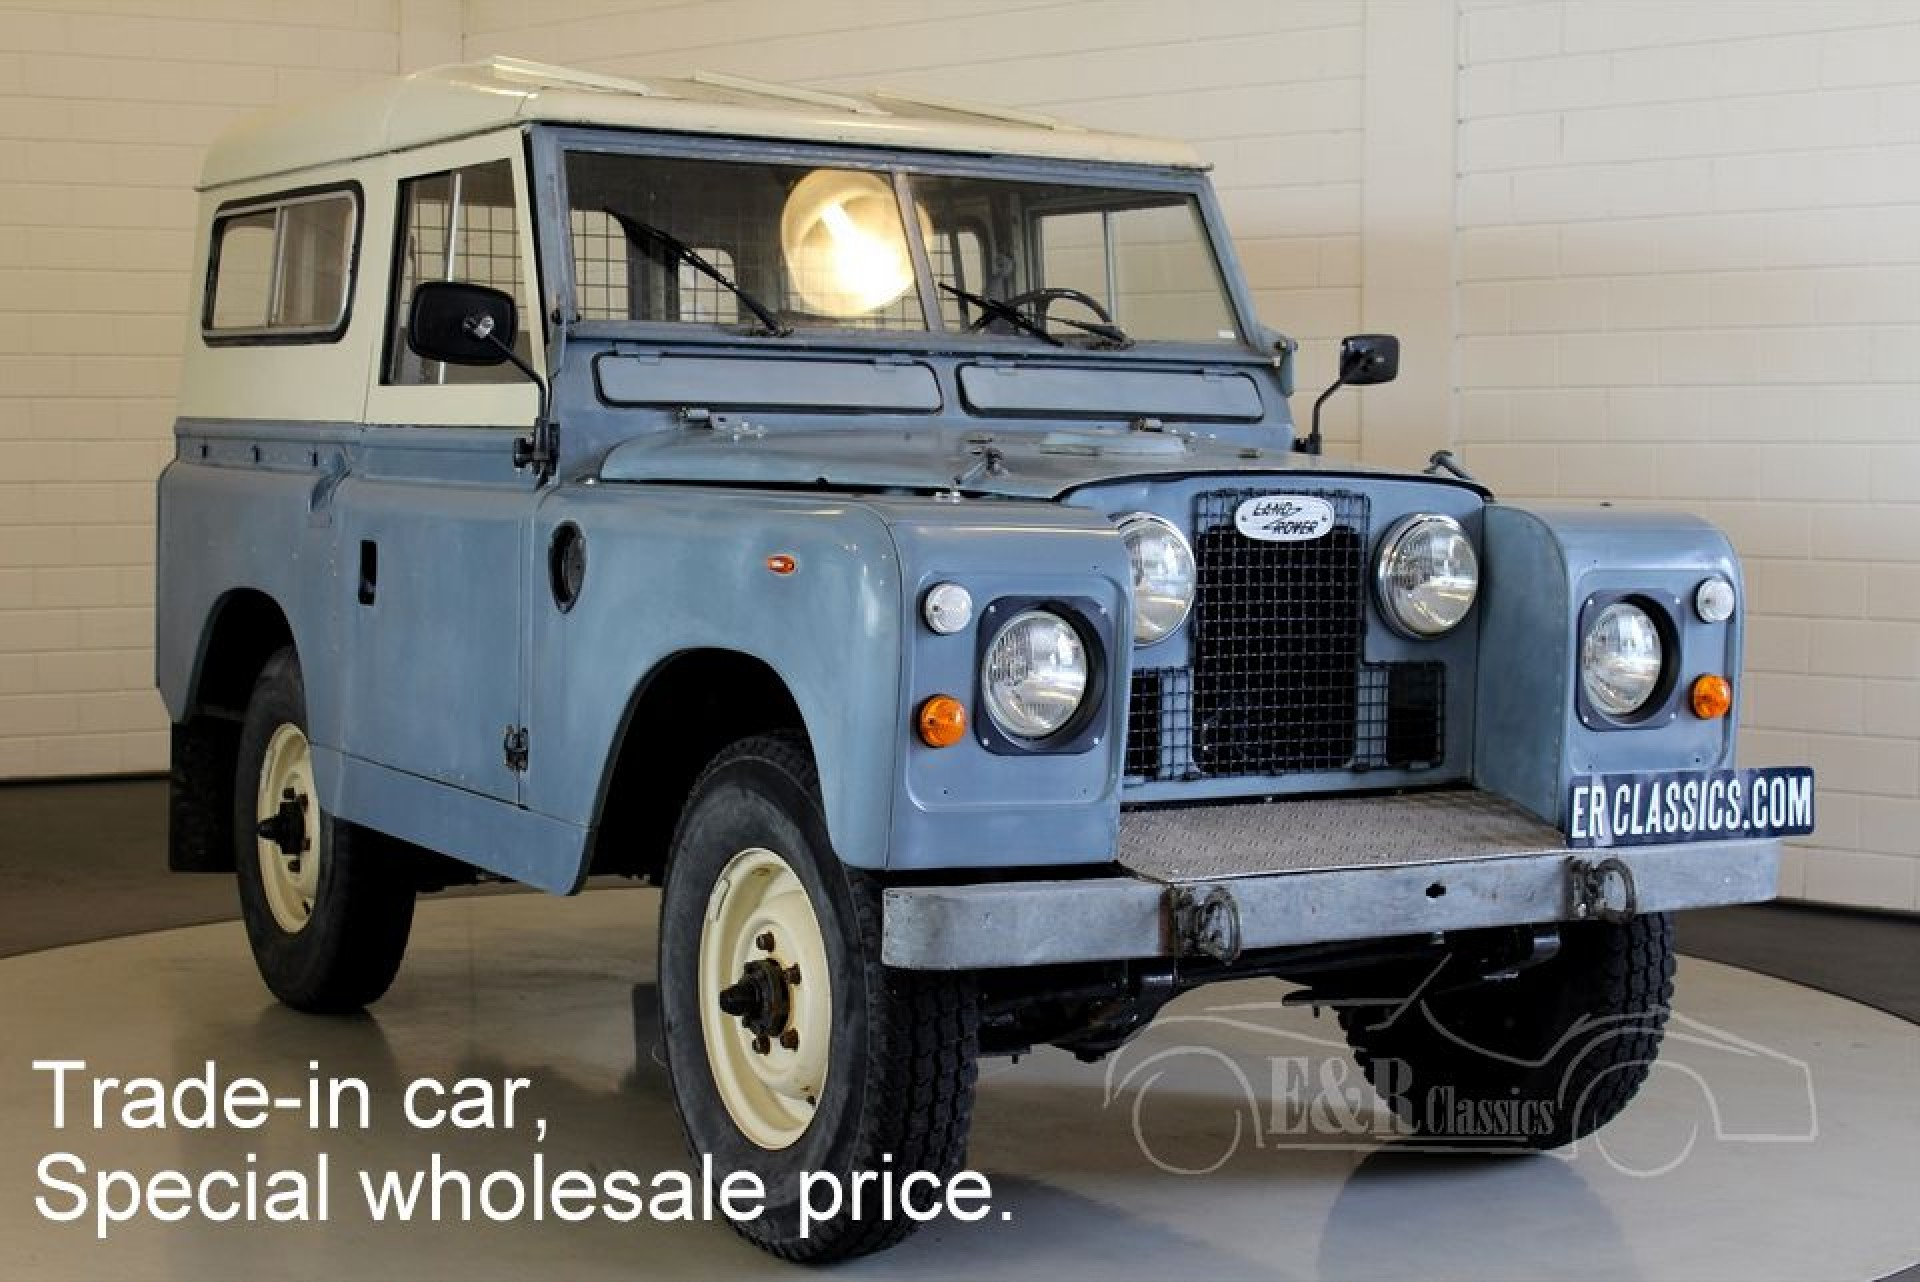 land rover 88 series ii a 1963 for sale at erclassics. Black Bedroom Furniture Sets. Home Design Ideas